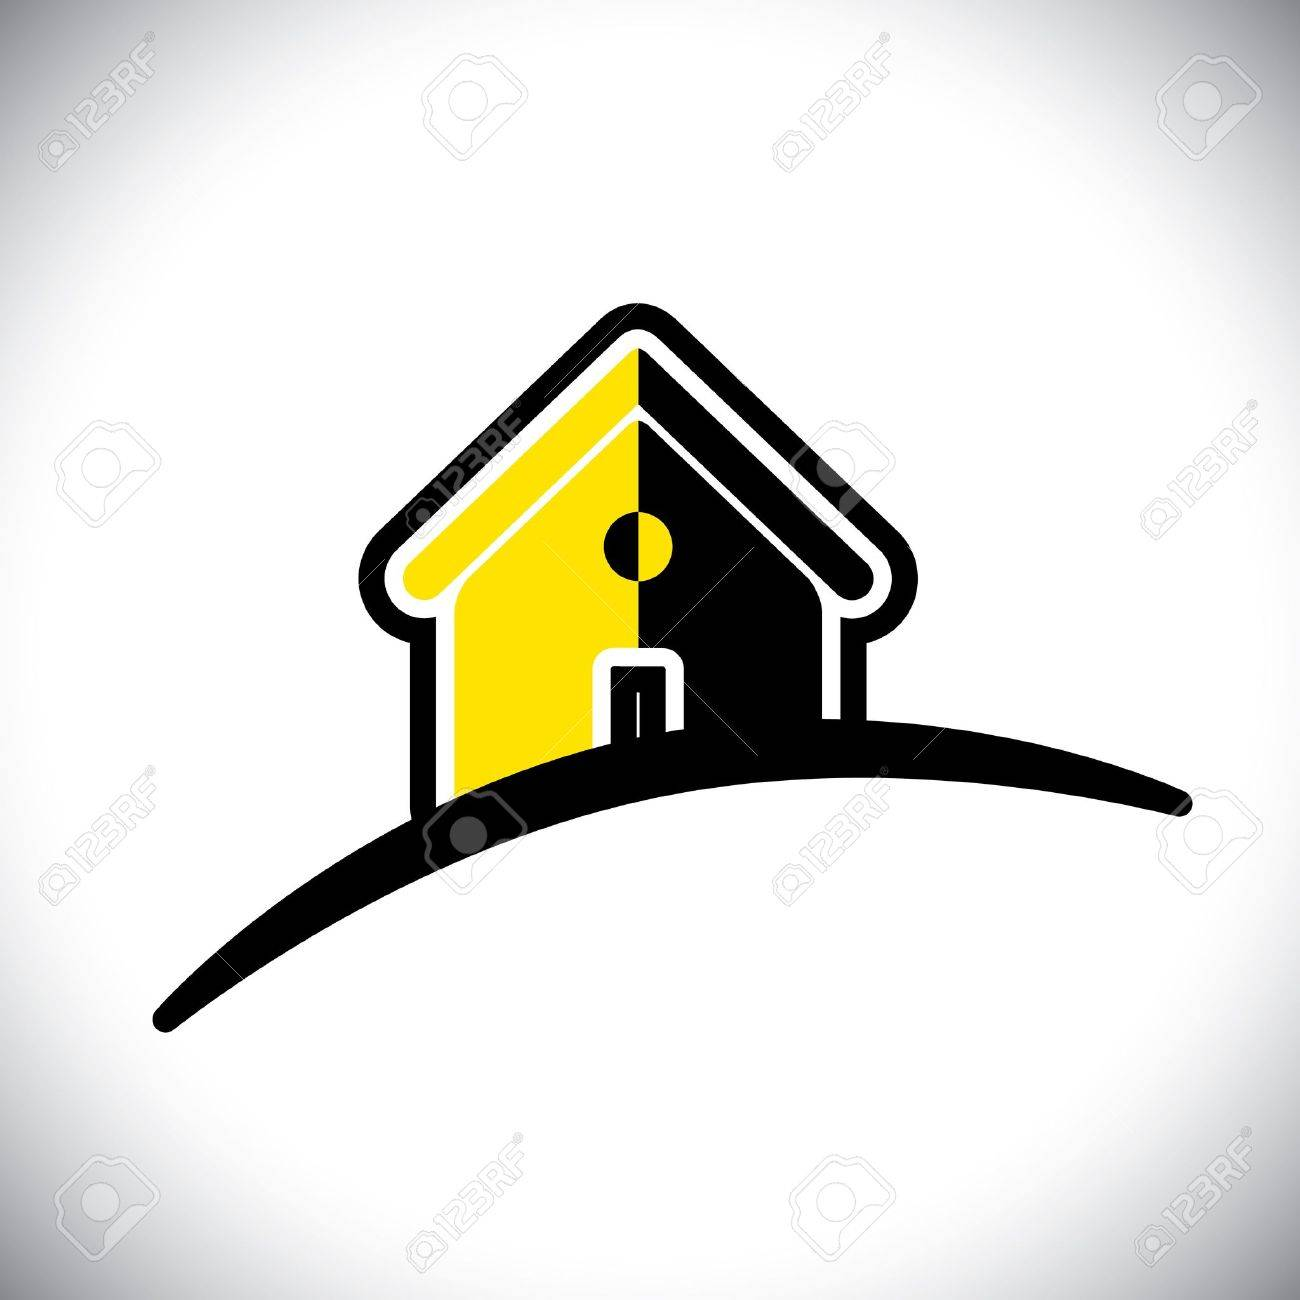 abstract residential house(home) icon(symbol)- graphic. This illustration can also represent construction industry, realty business of buying and selling property, etc Stock Vector - 20787205